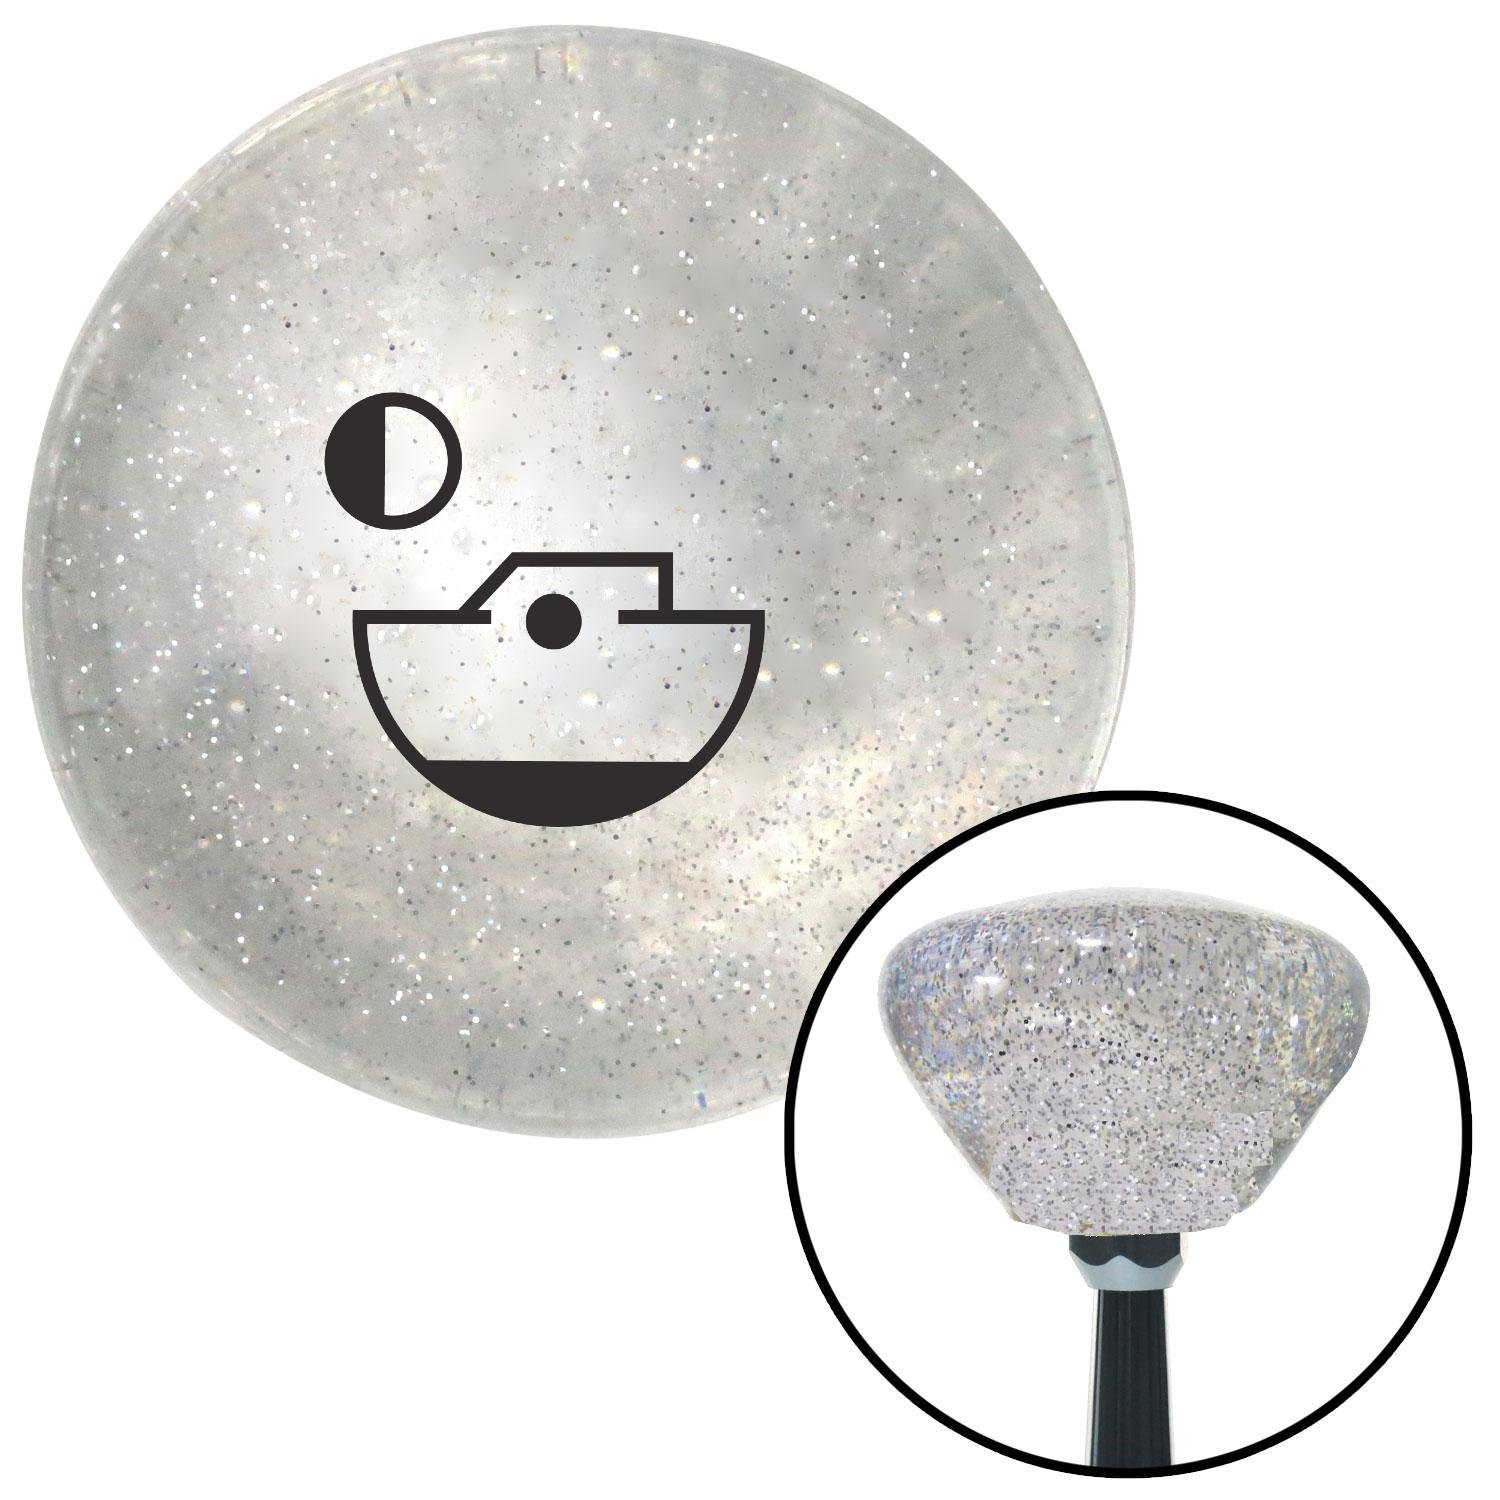 American Shifter 159475 Clear Retro Metal Flake Shift Knob with M16 x 1.5 Insert Black Boat and Moon